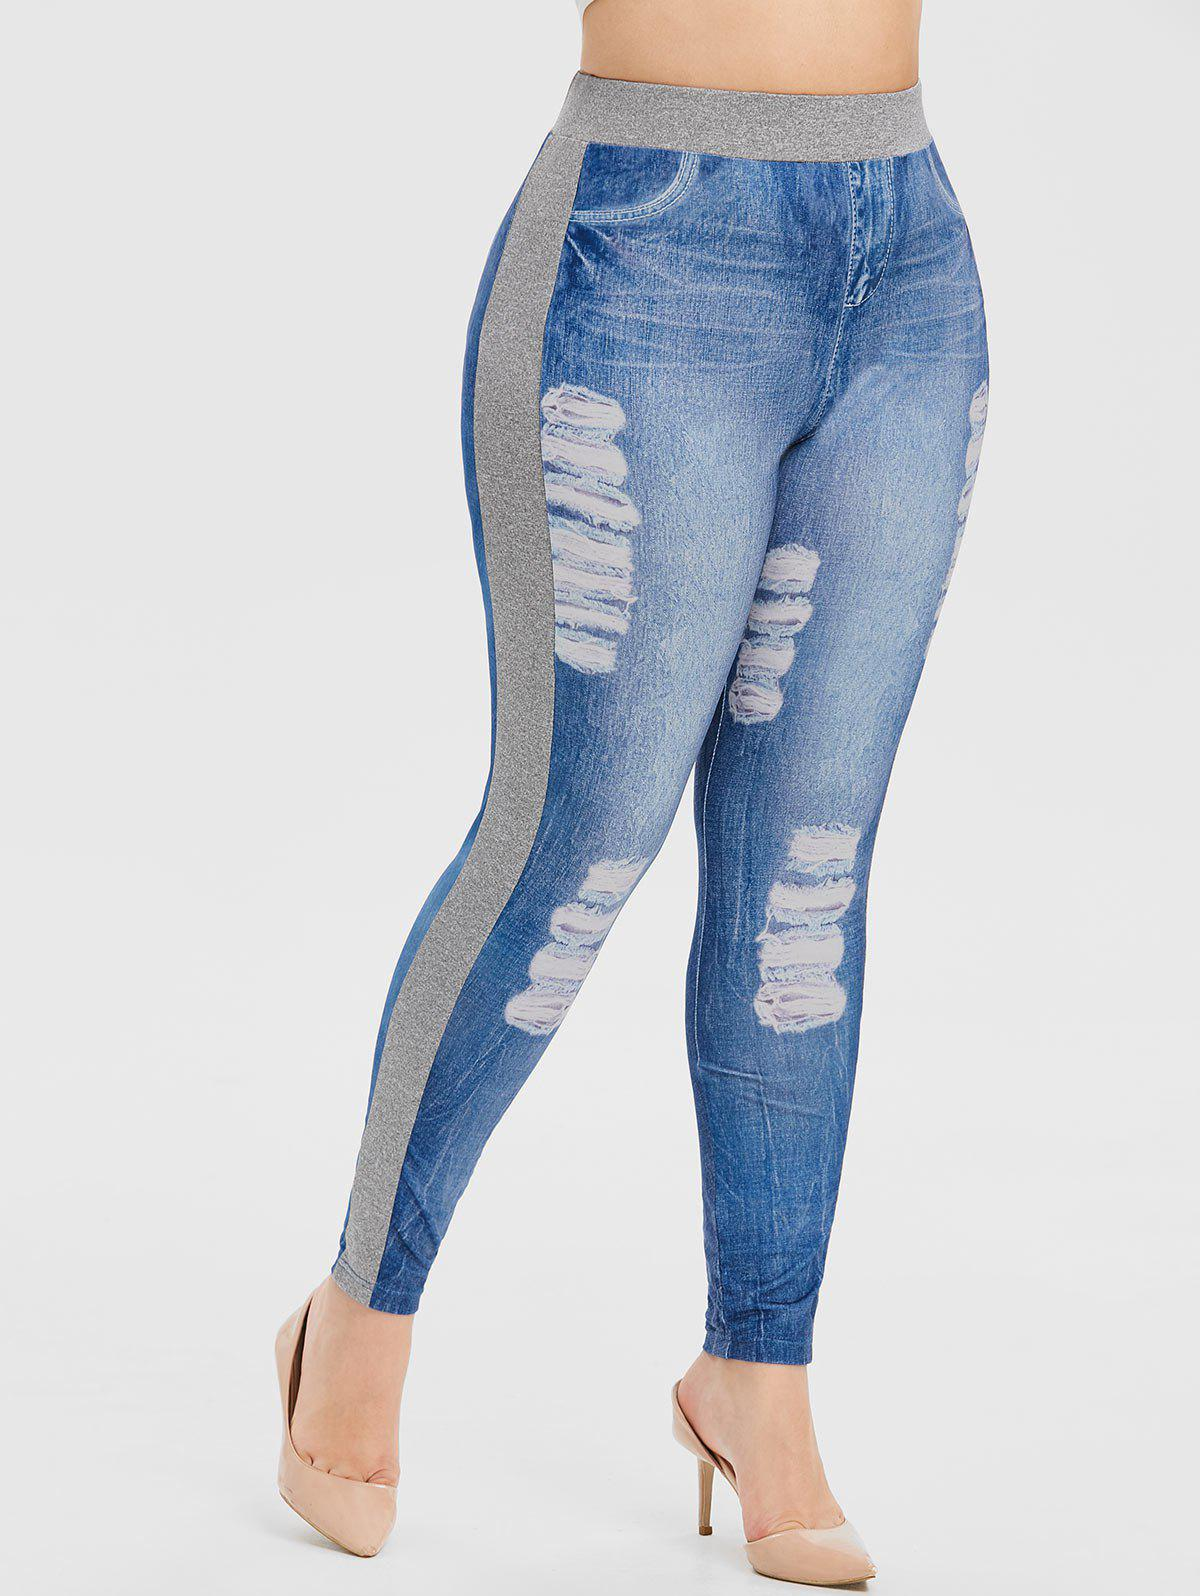 Plus Size 3D Ripped Imprimer taille haute jeggings